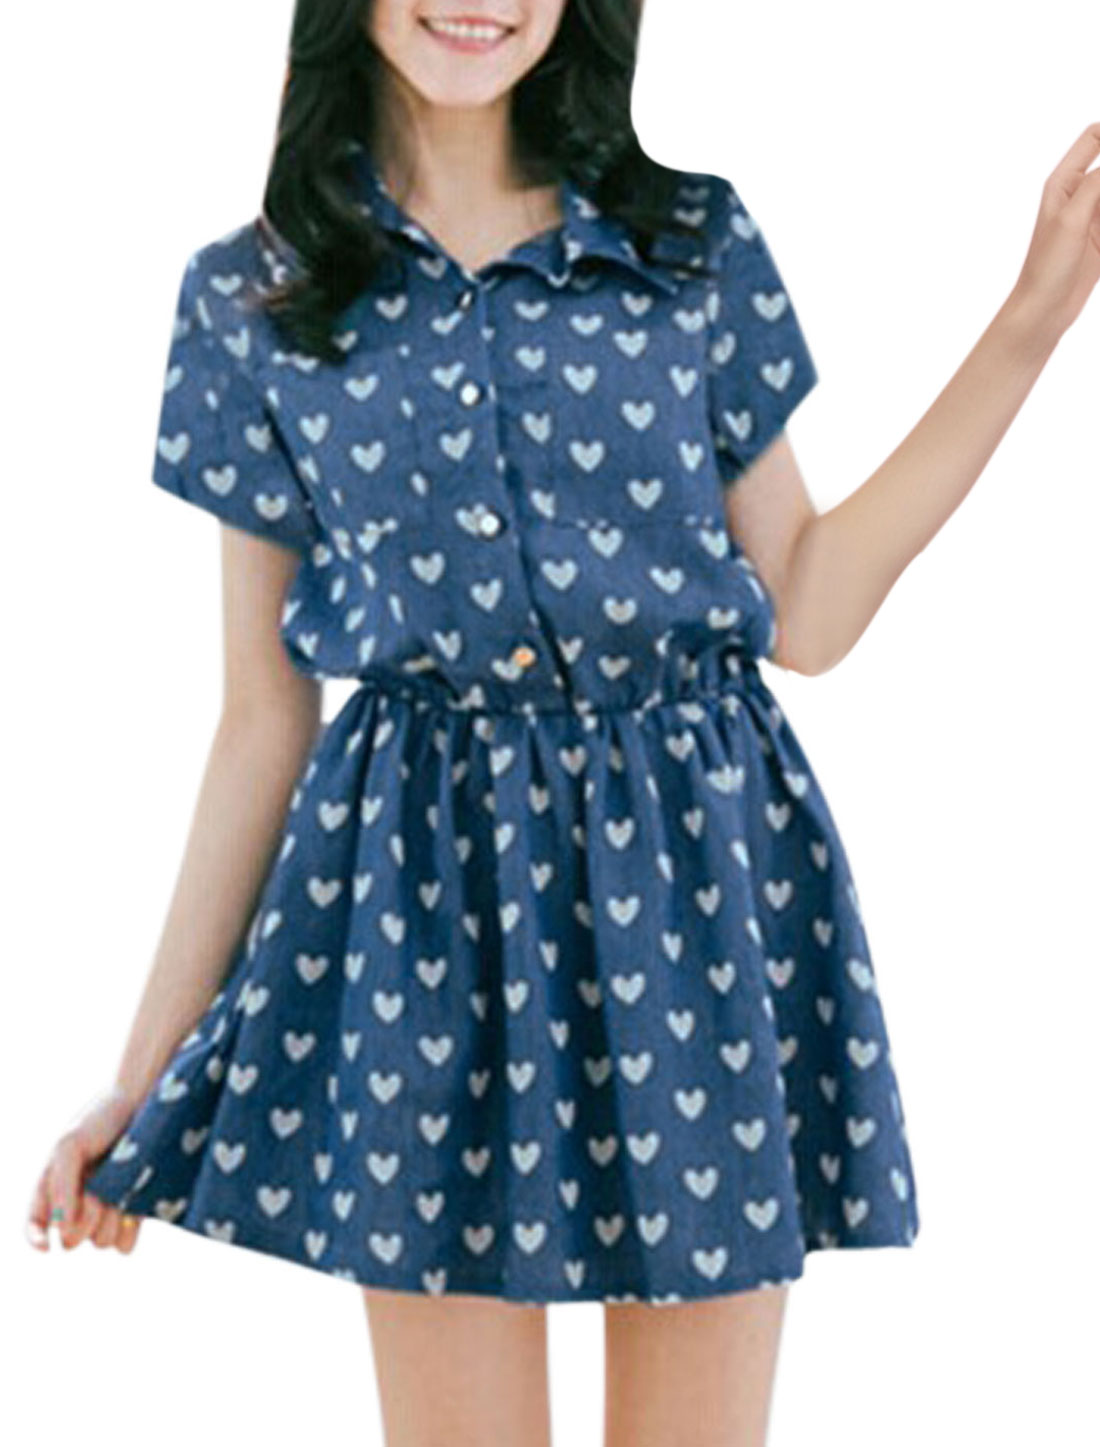 Lady Point Collar Hearts Pattern Roll Up Short Sleeve A-line Dress Blue XS